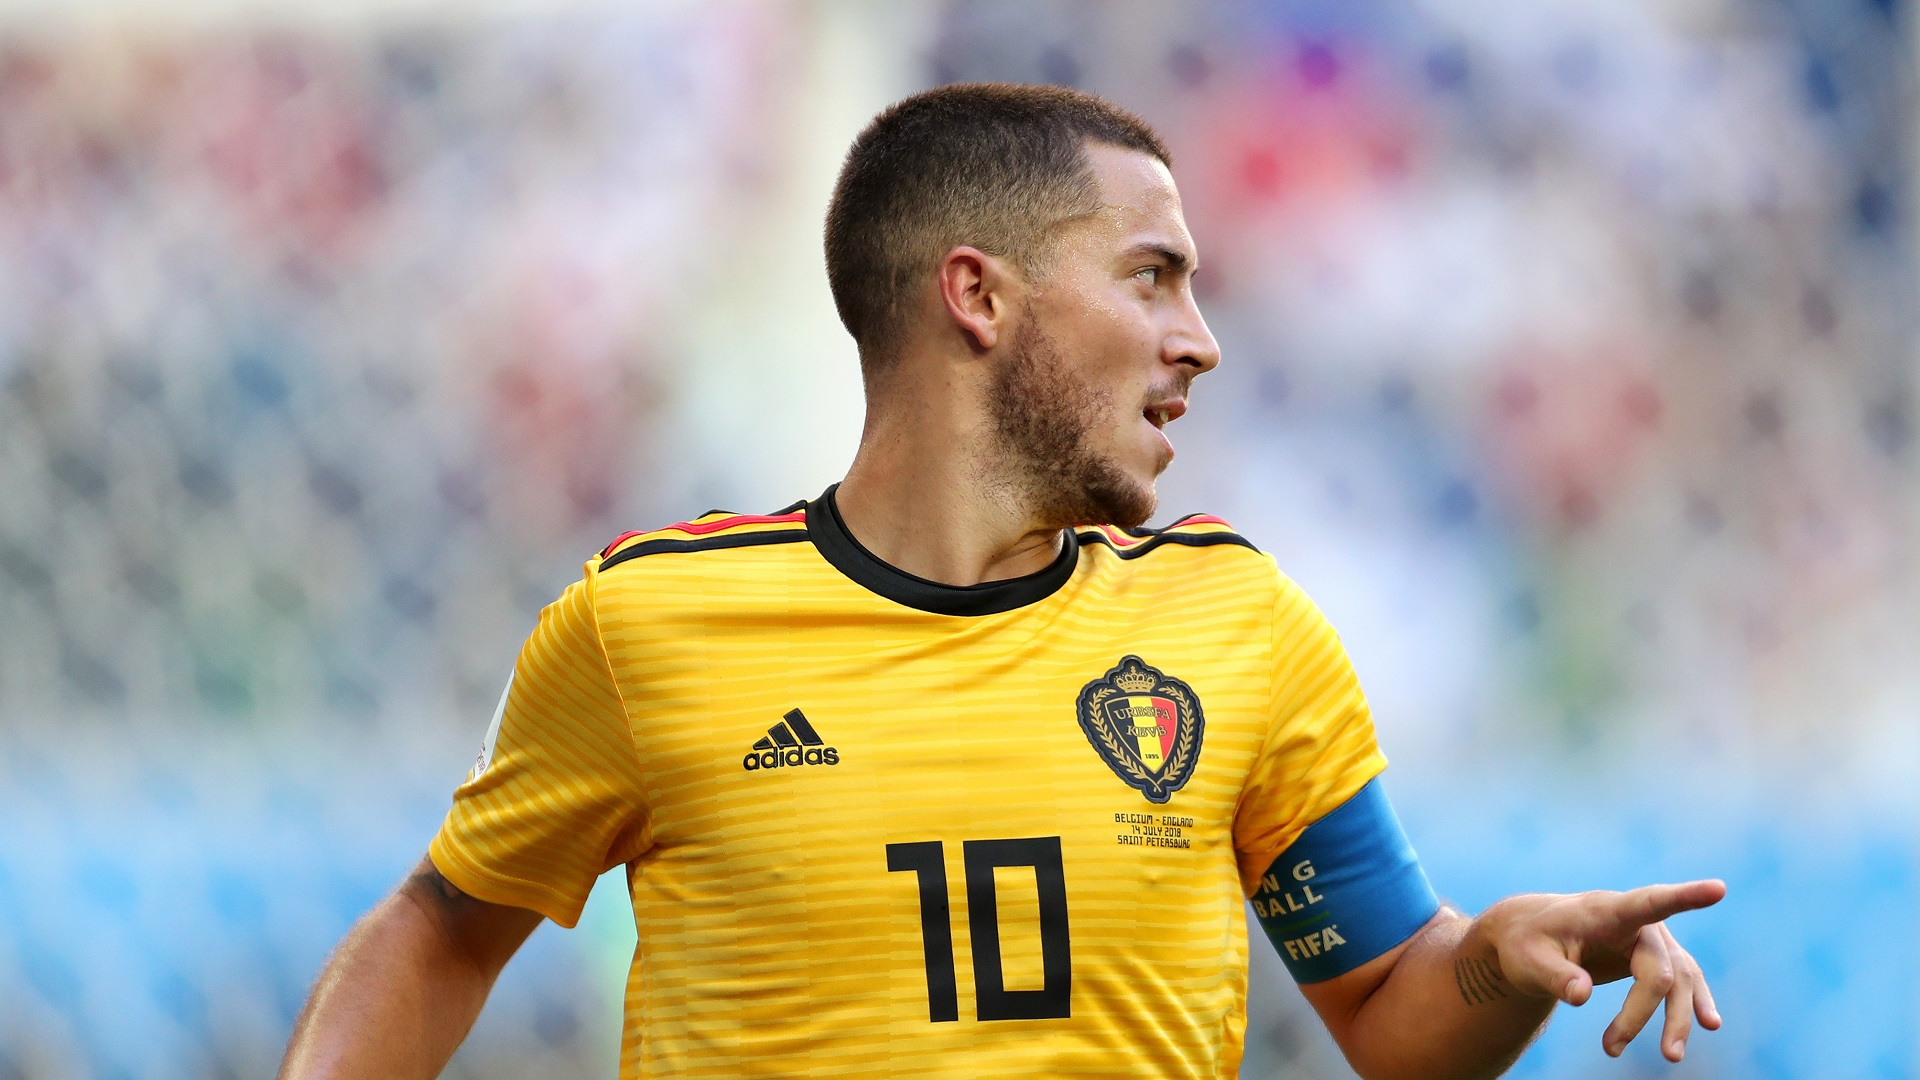 Real Madrid's Transfer Targets: Neymar, Hazard & The